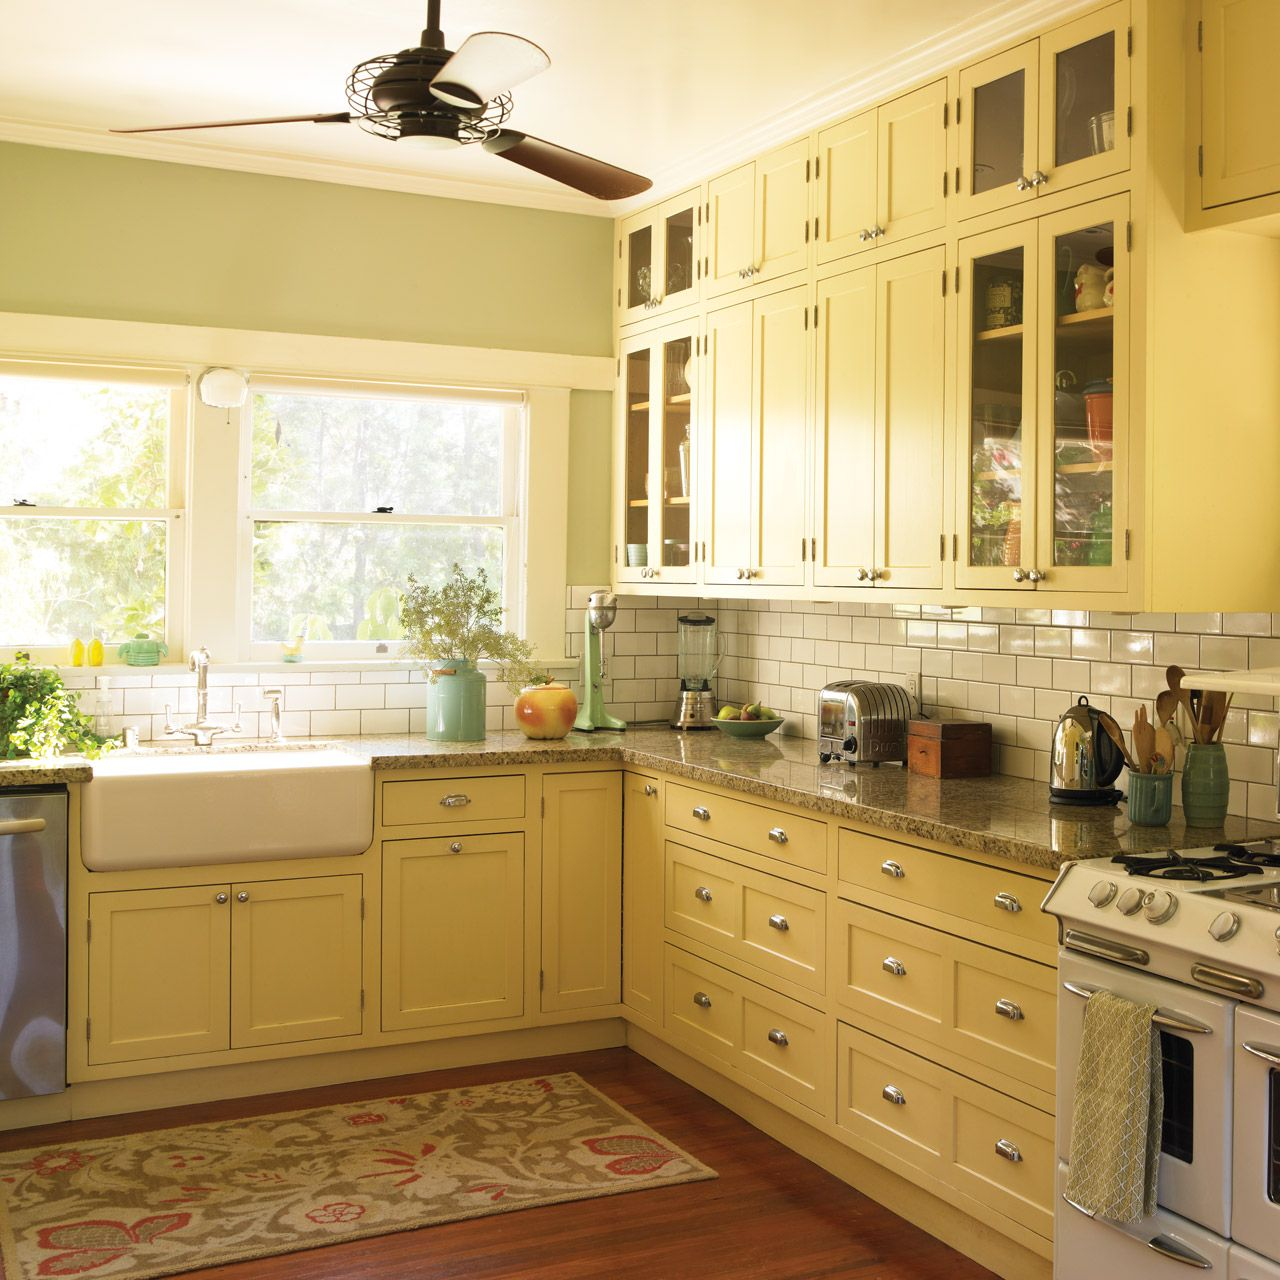 Sunny Kitchen! Dunn-Edwards Paints paint colors: Walls: Filtered ...